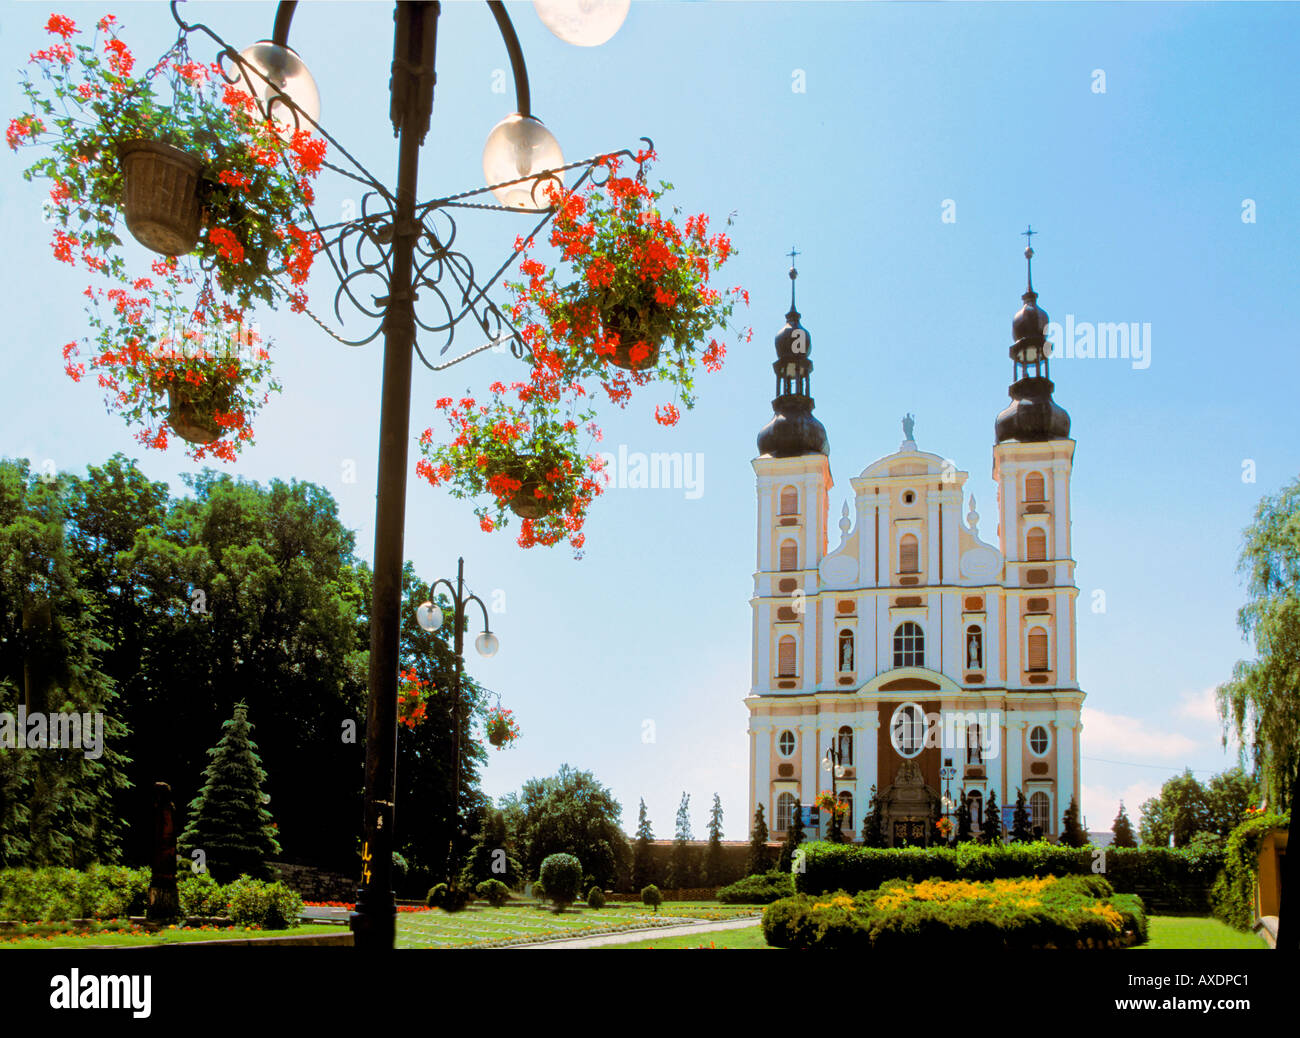 church of st peter and paul in picturesque otmuchow of poland